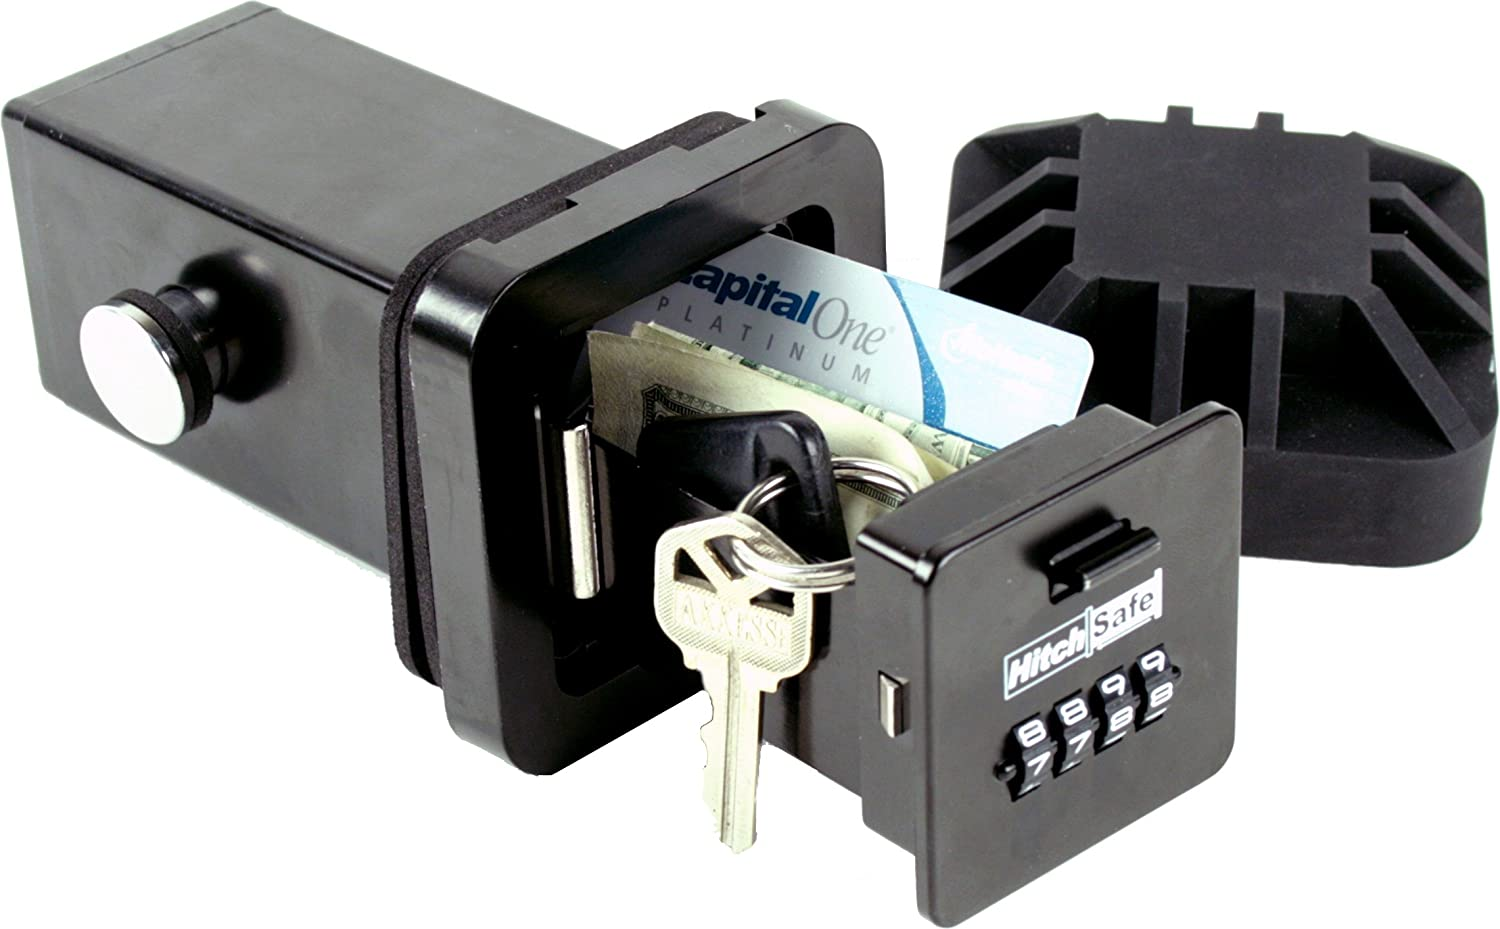 Amazon.com: HitchSafe HS7000 Key Vault: Automotive